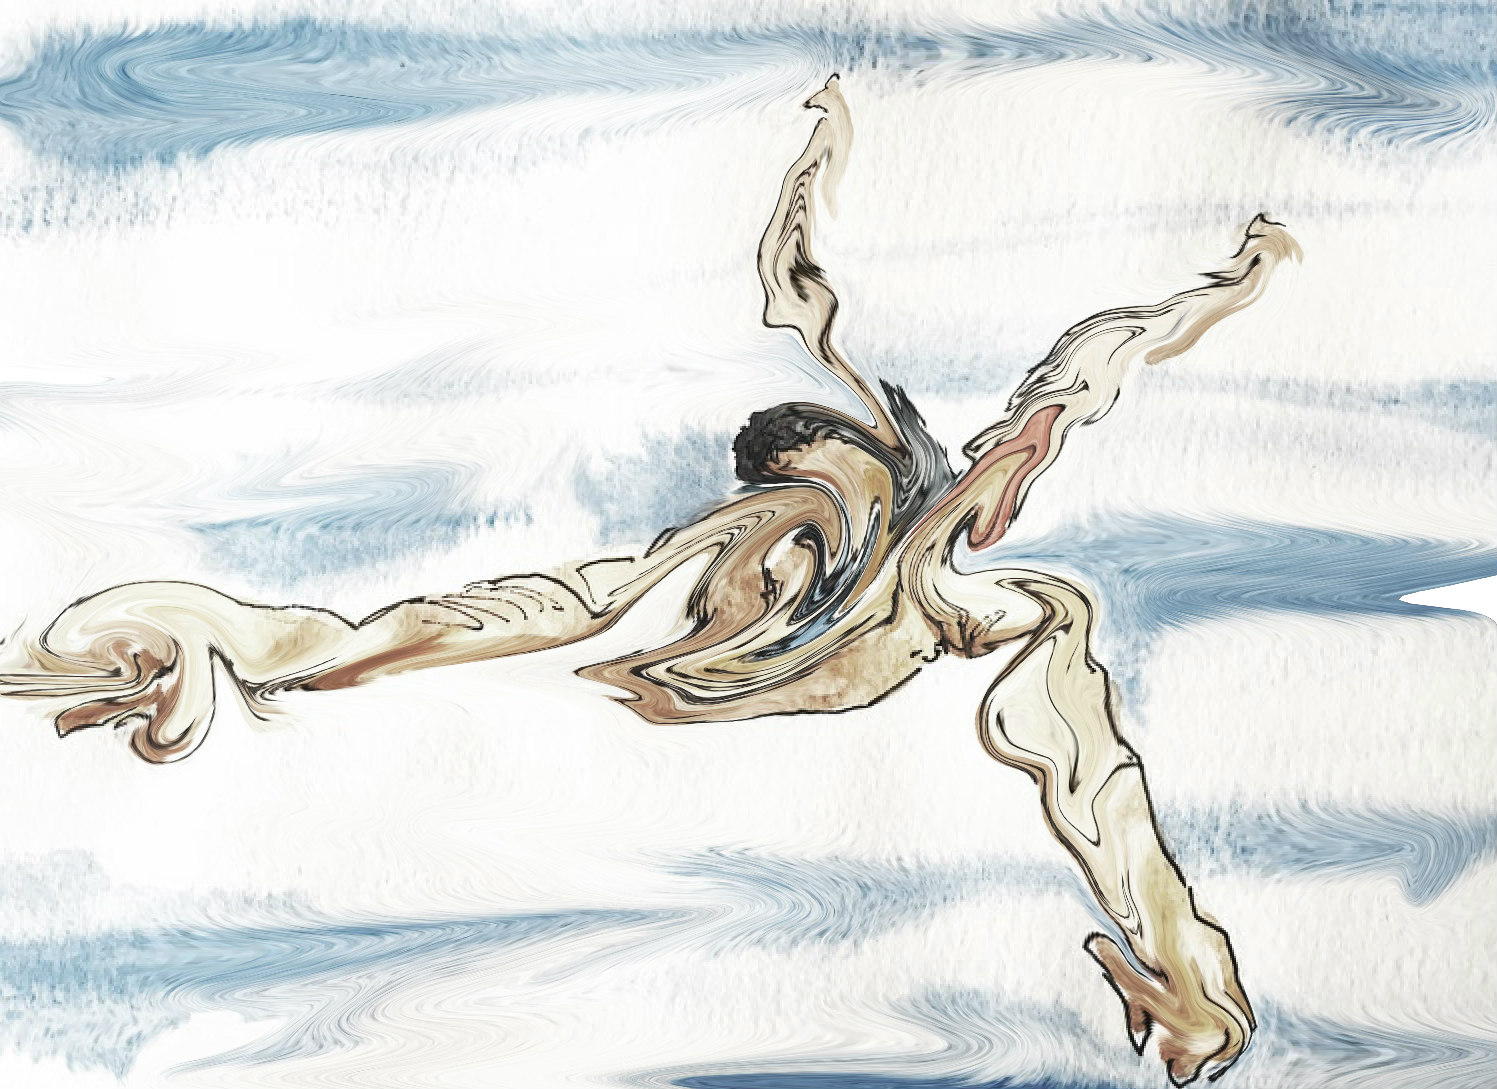 Man Swimming by Alison Garwood-Jones